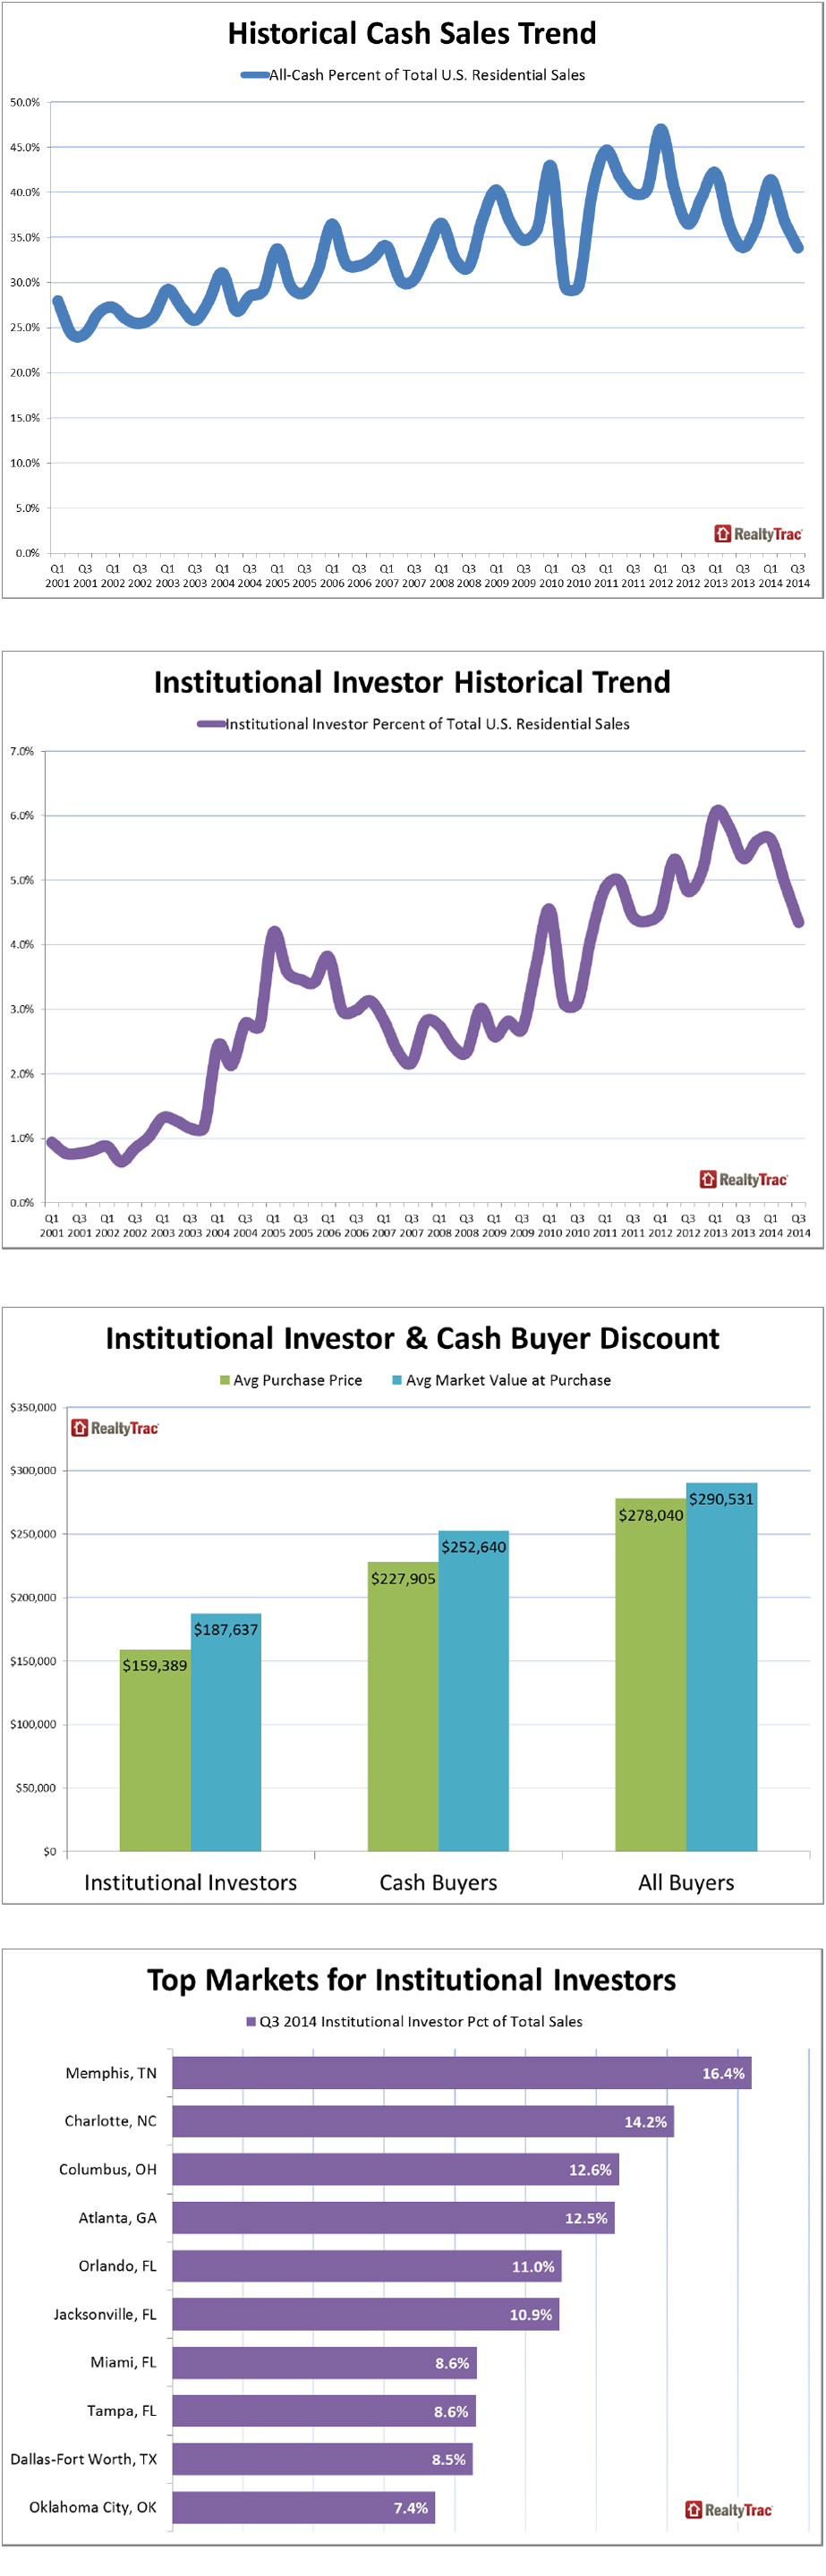 Institutional-Investor-Participation-in-Residential-Sales.jpg